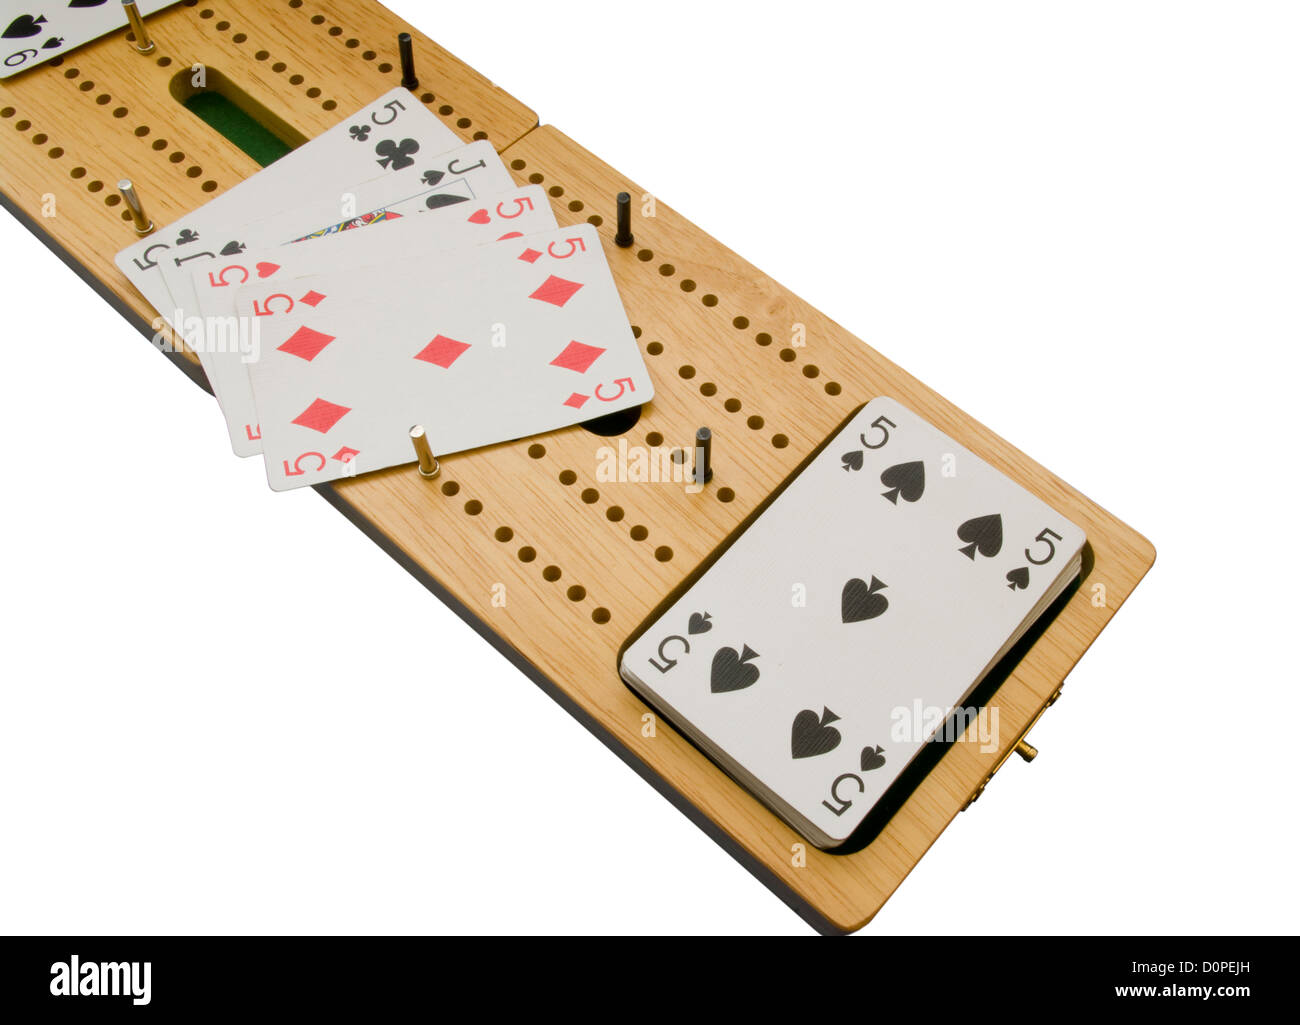 Cribbage Stock Photos Cribbage Stock Images Alamy